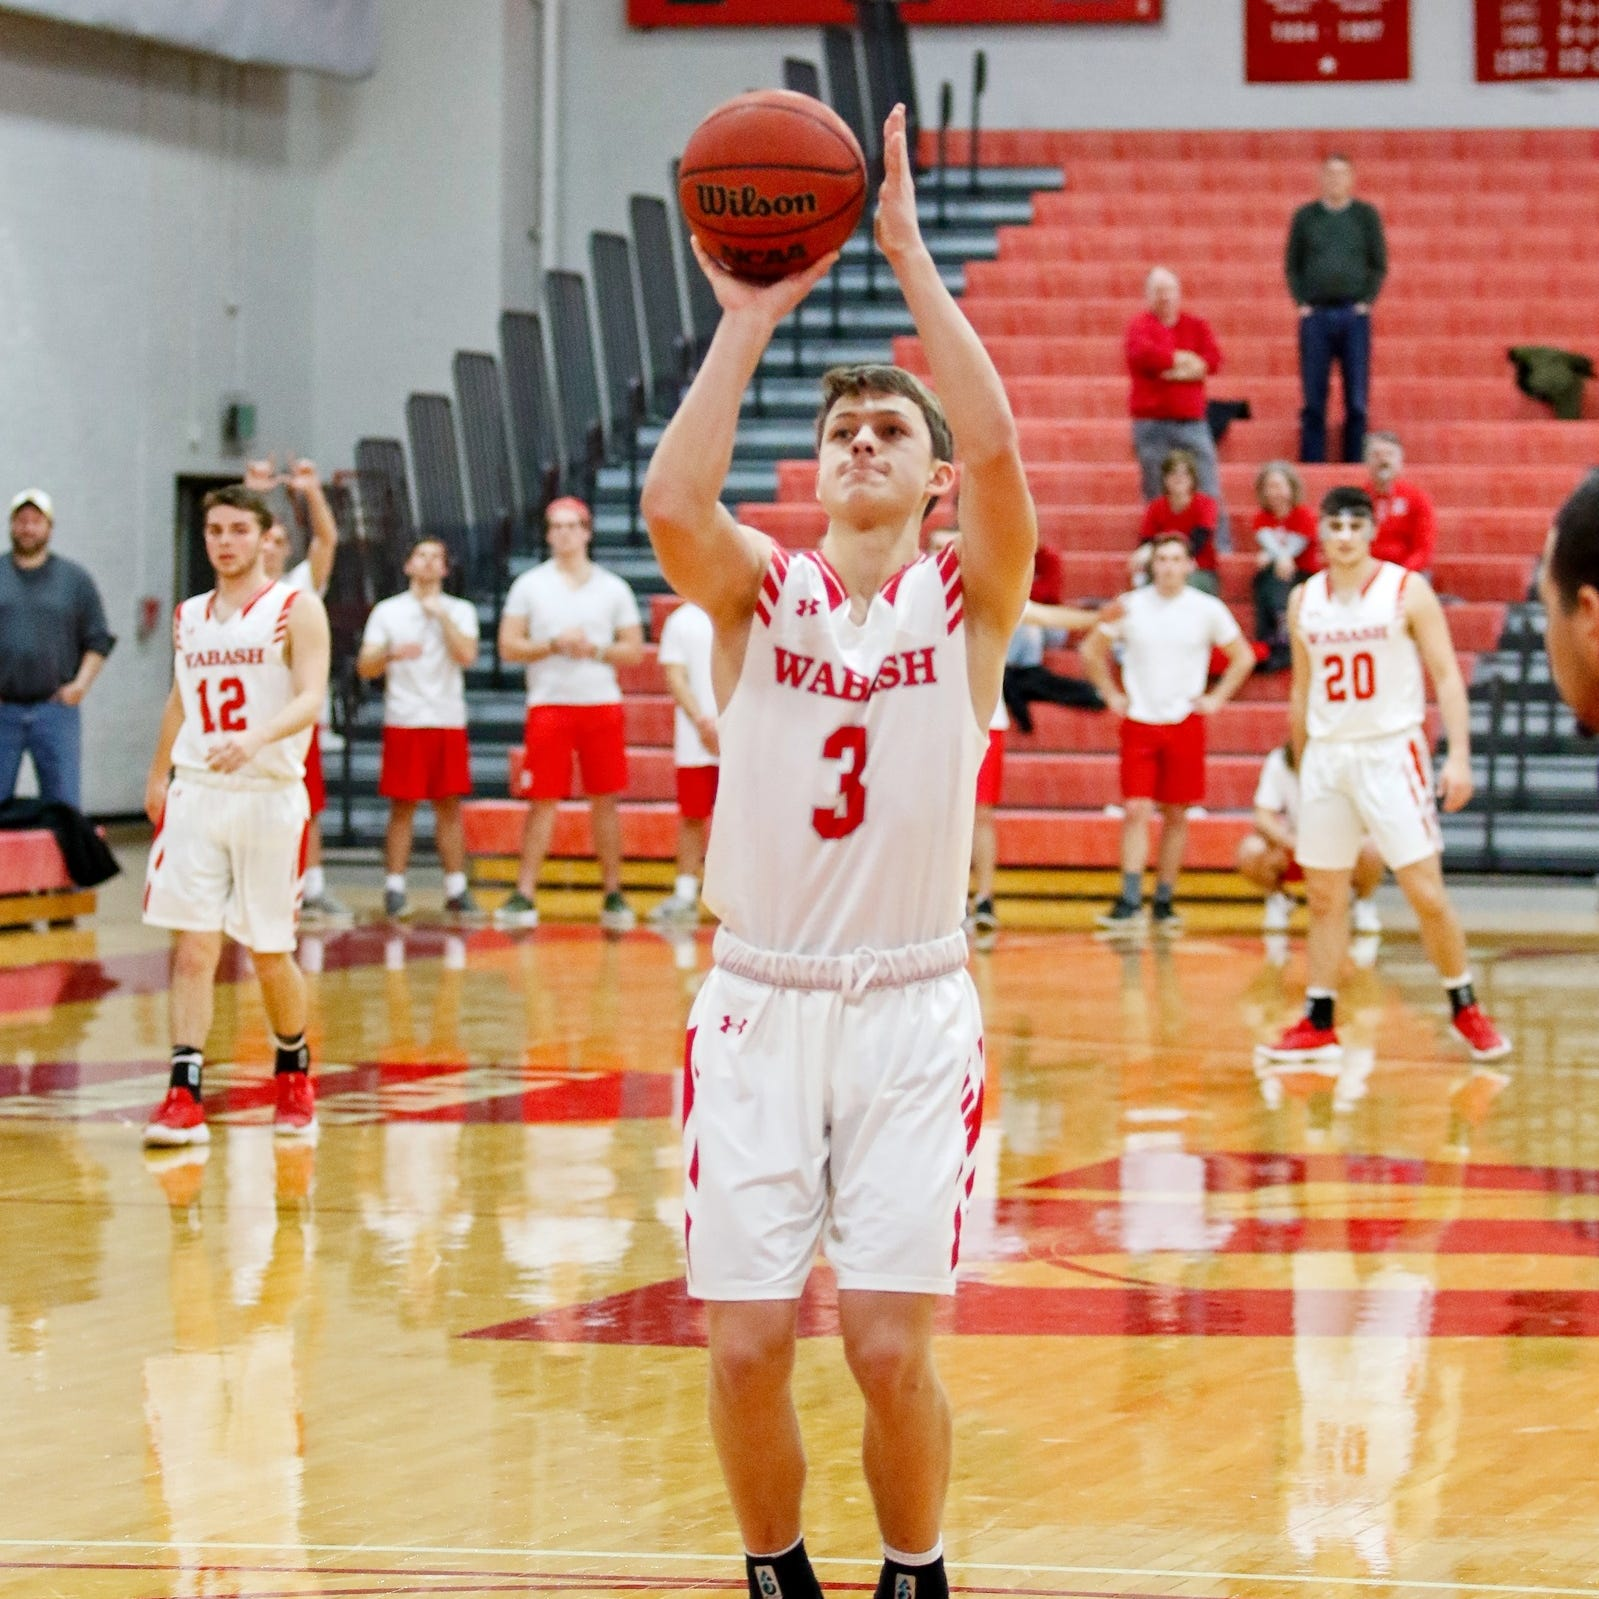 Wabash's Jack Davidson breaks NCAA record for consecutive free throws then... misses his next one